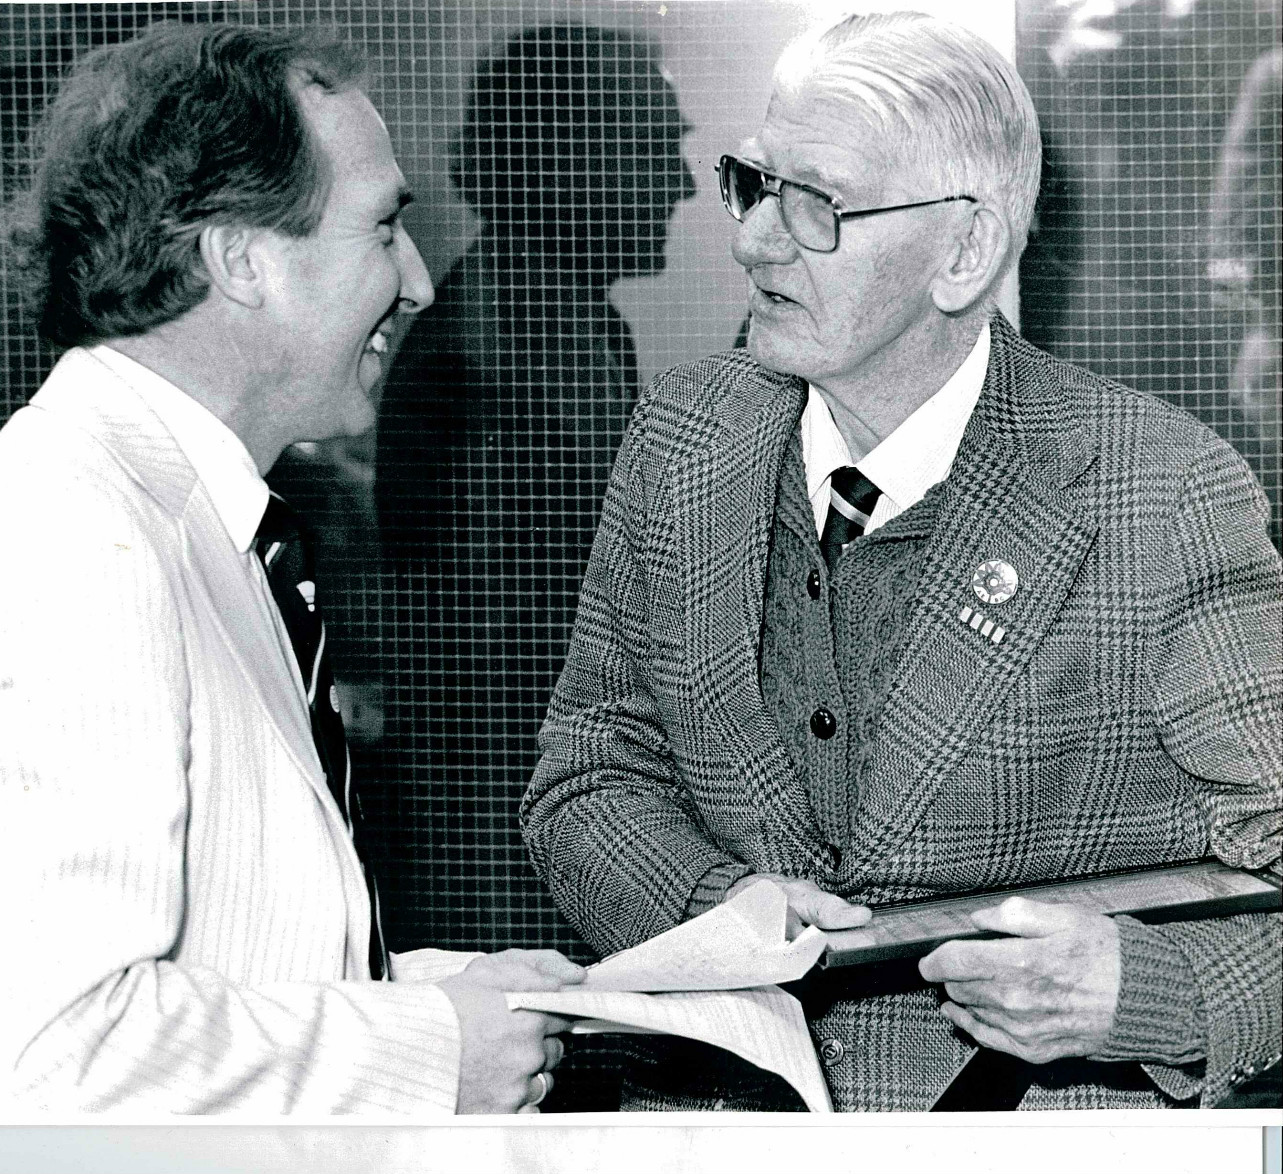 Pe nielsen presenting frank devlin with the ibf dist serv award in 1986 - pic by sportsfile ltd